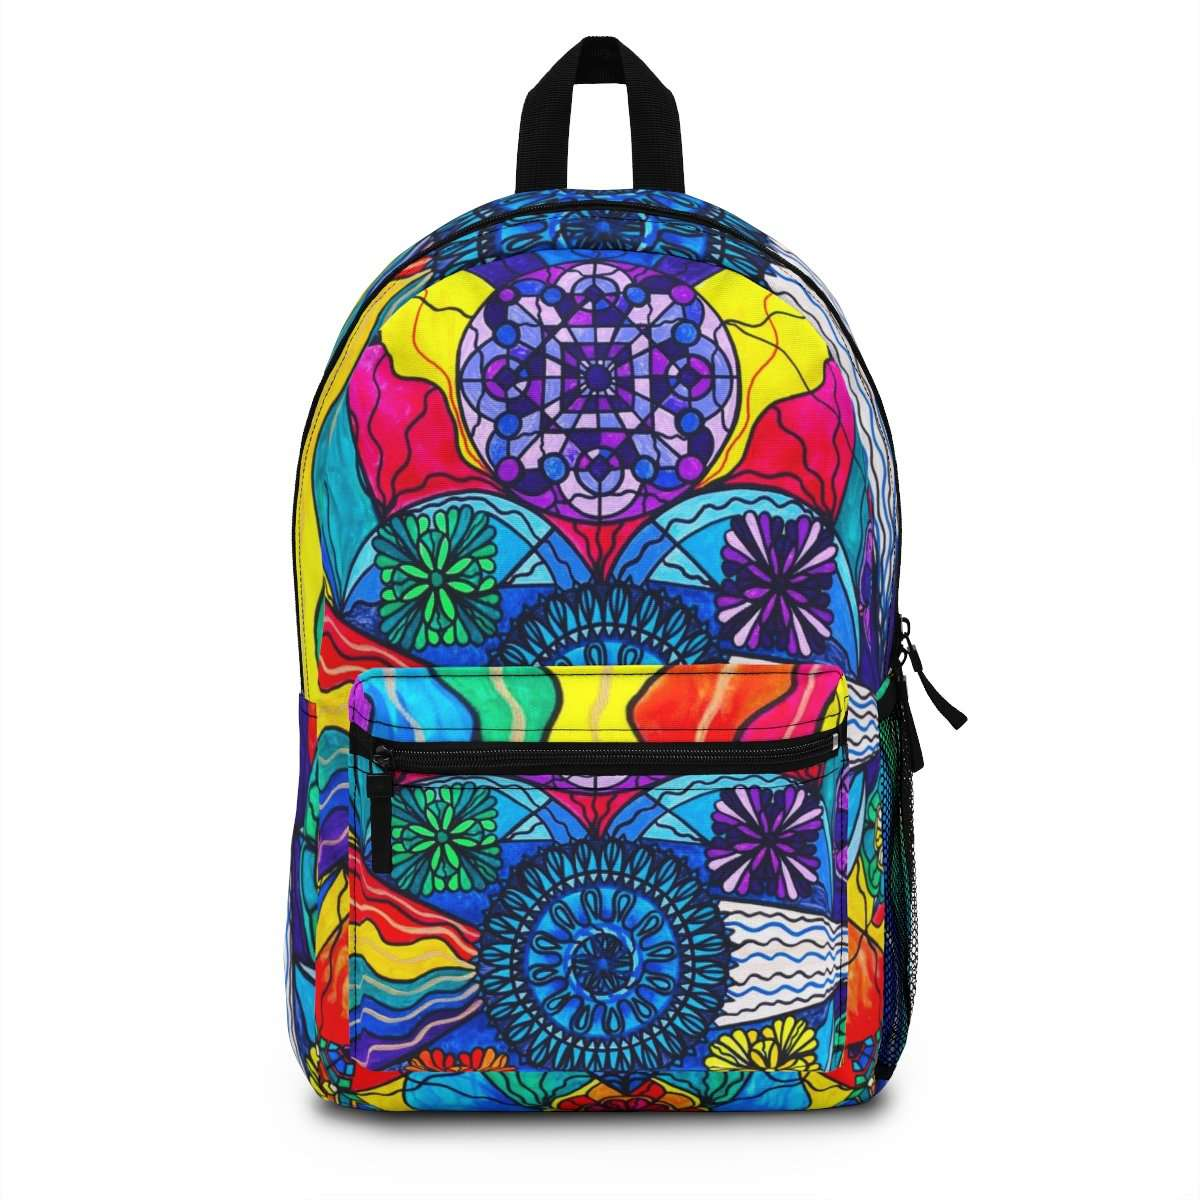 Speak From The Heart - AOP Backpack